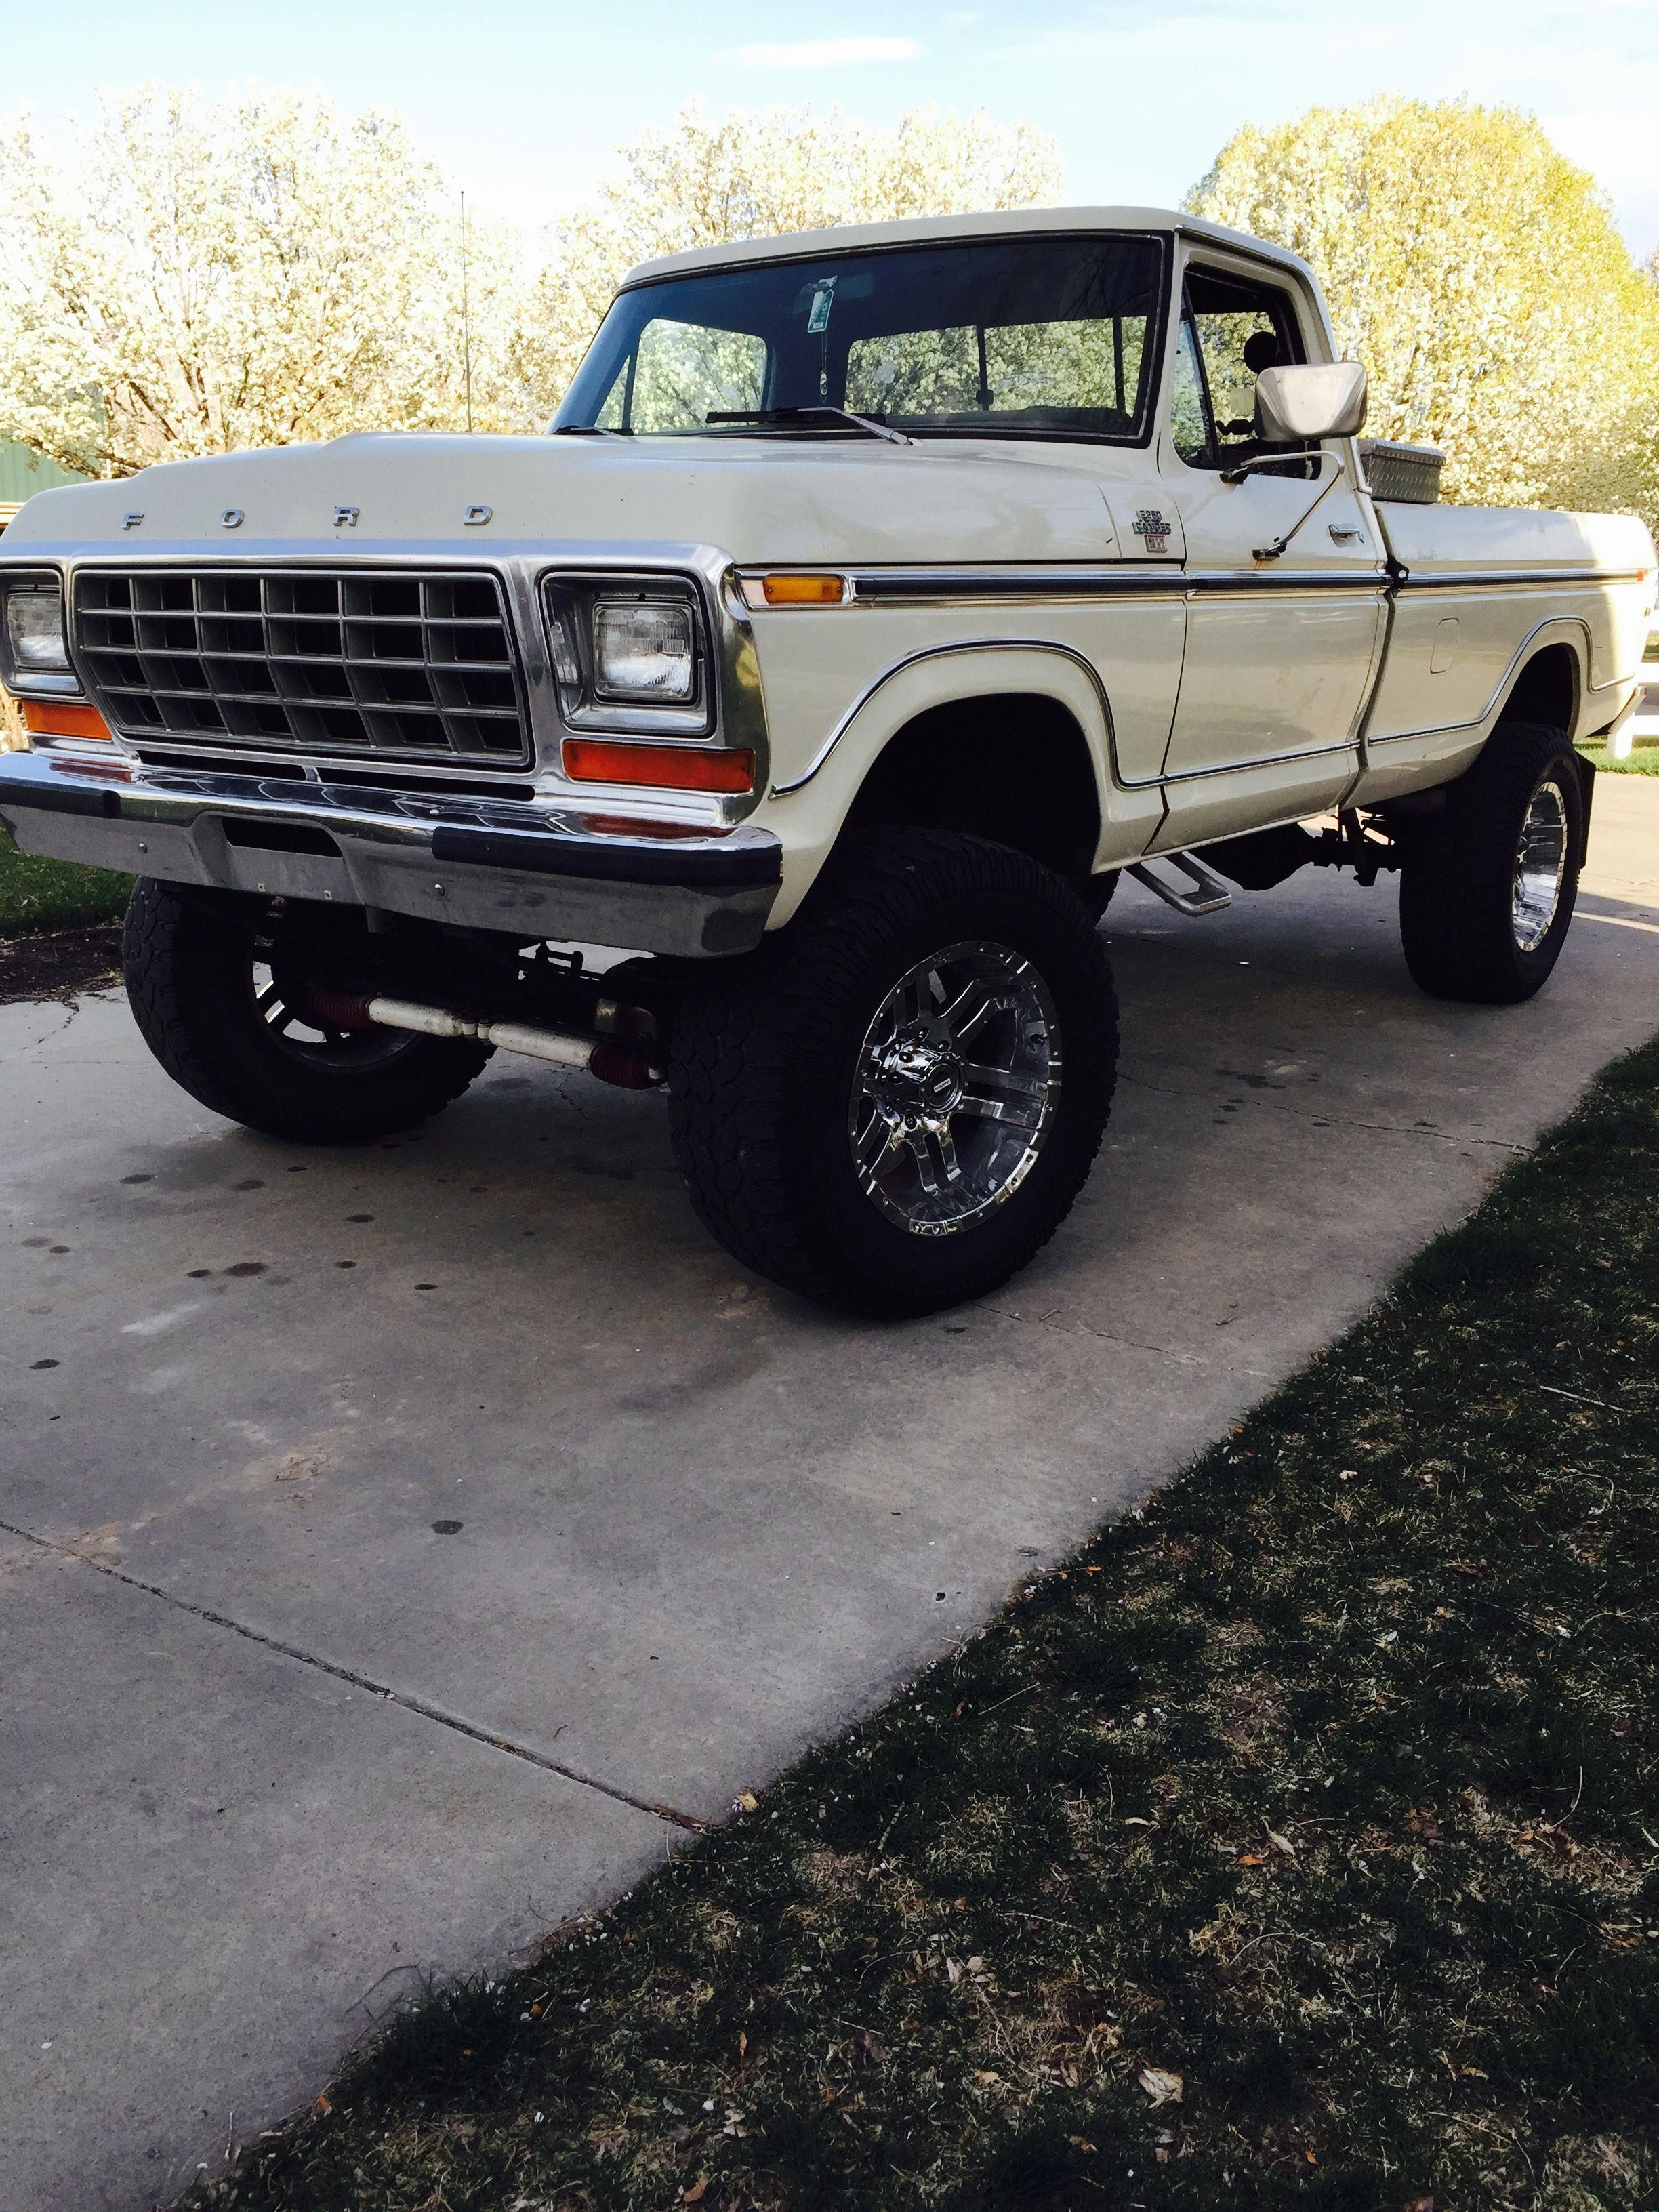 Dang I Honestly Adore This Color Scheme For This 1981 F150 1981f150 Ford Trucks F150 1979 Ford Truck Classic Ford Trucks